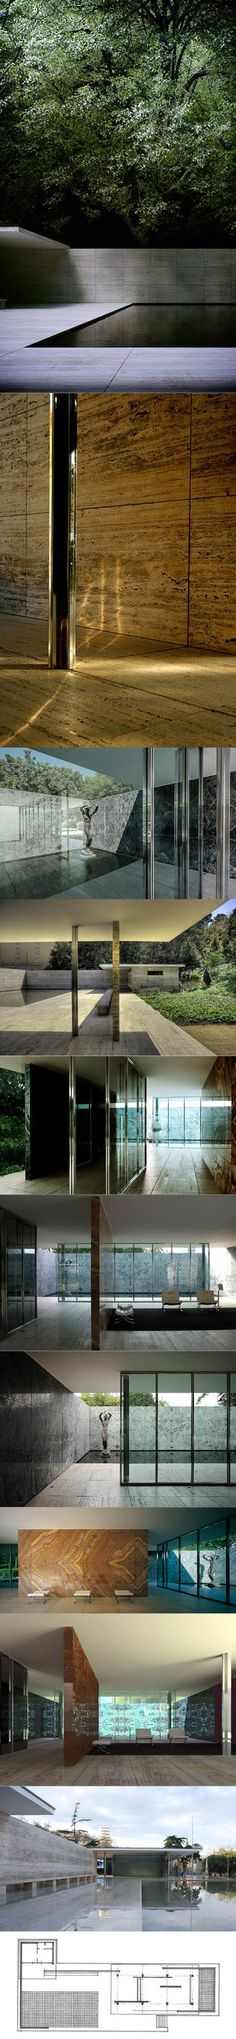 1929 Mies van der Rohe - Barcelona Pavilion / Spain / Germany / travertine steel concrete glass / cultural